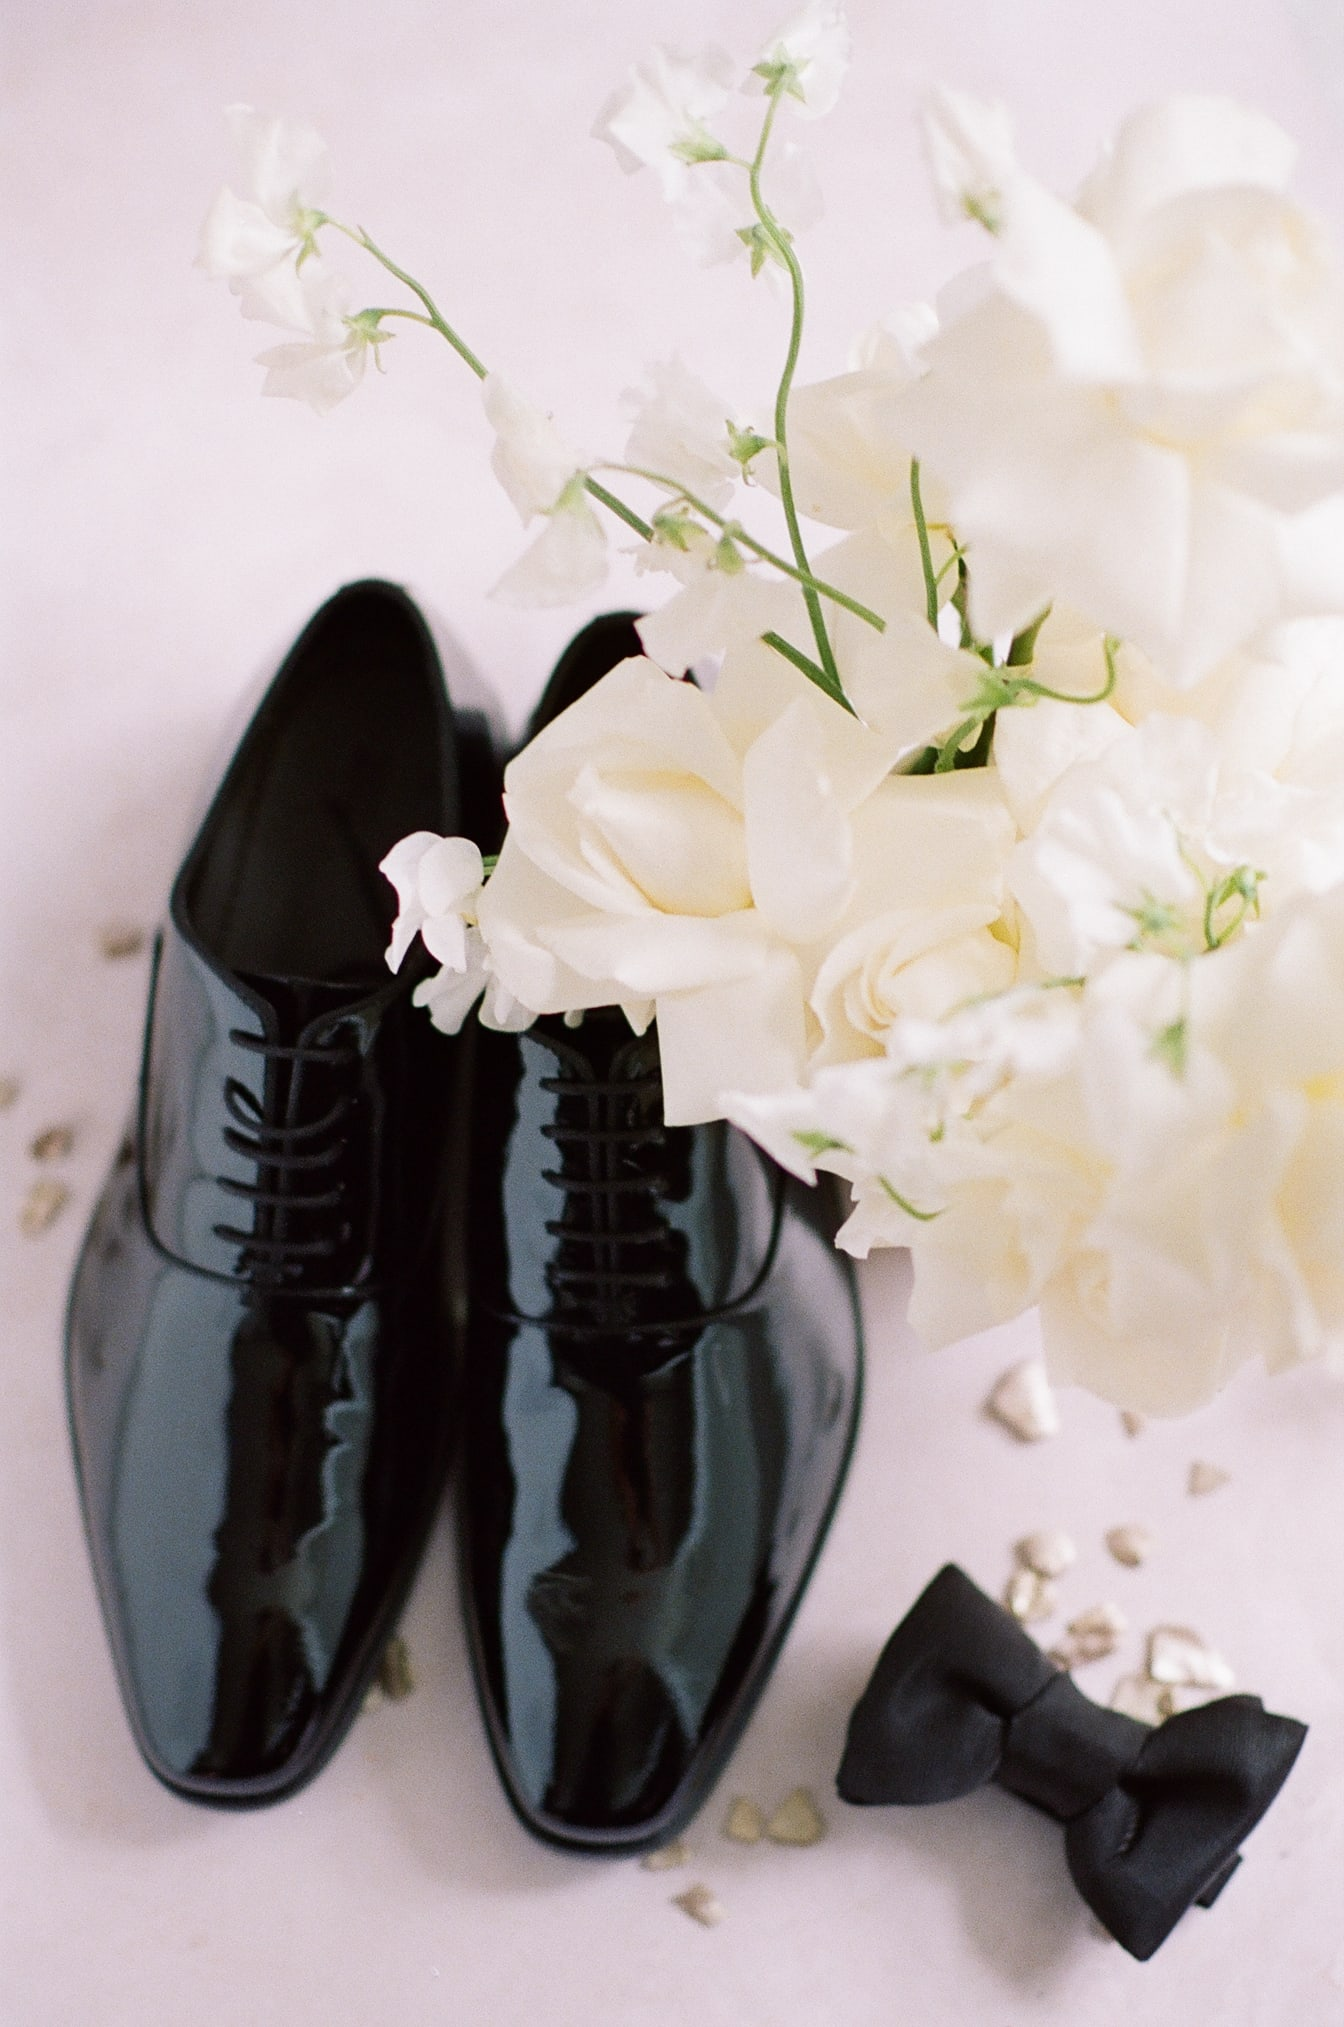 Groom's glossy shoes placed next to bow tie